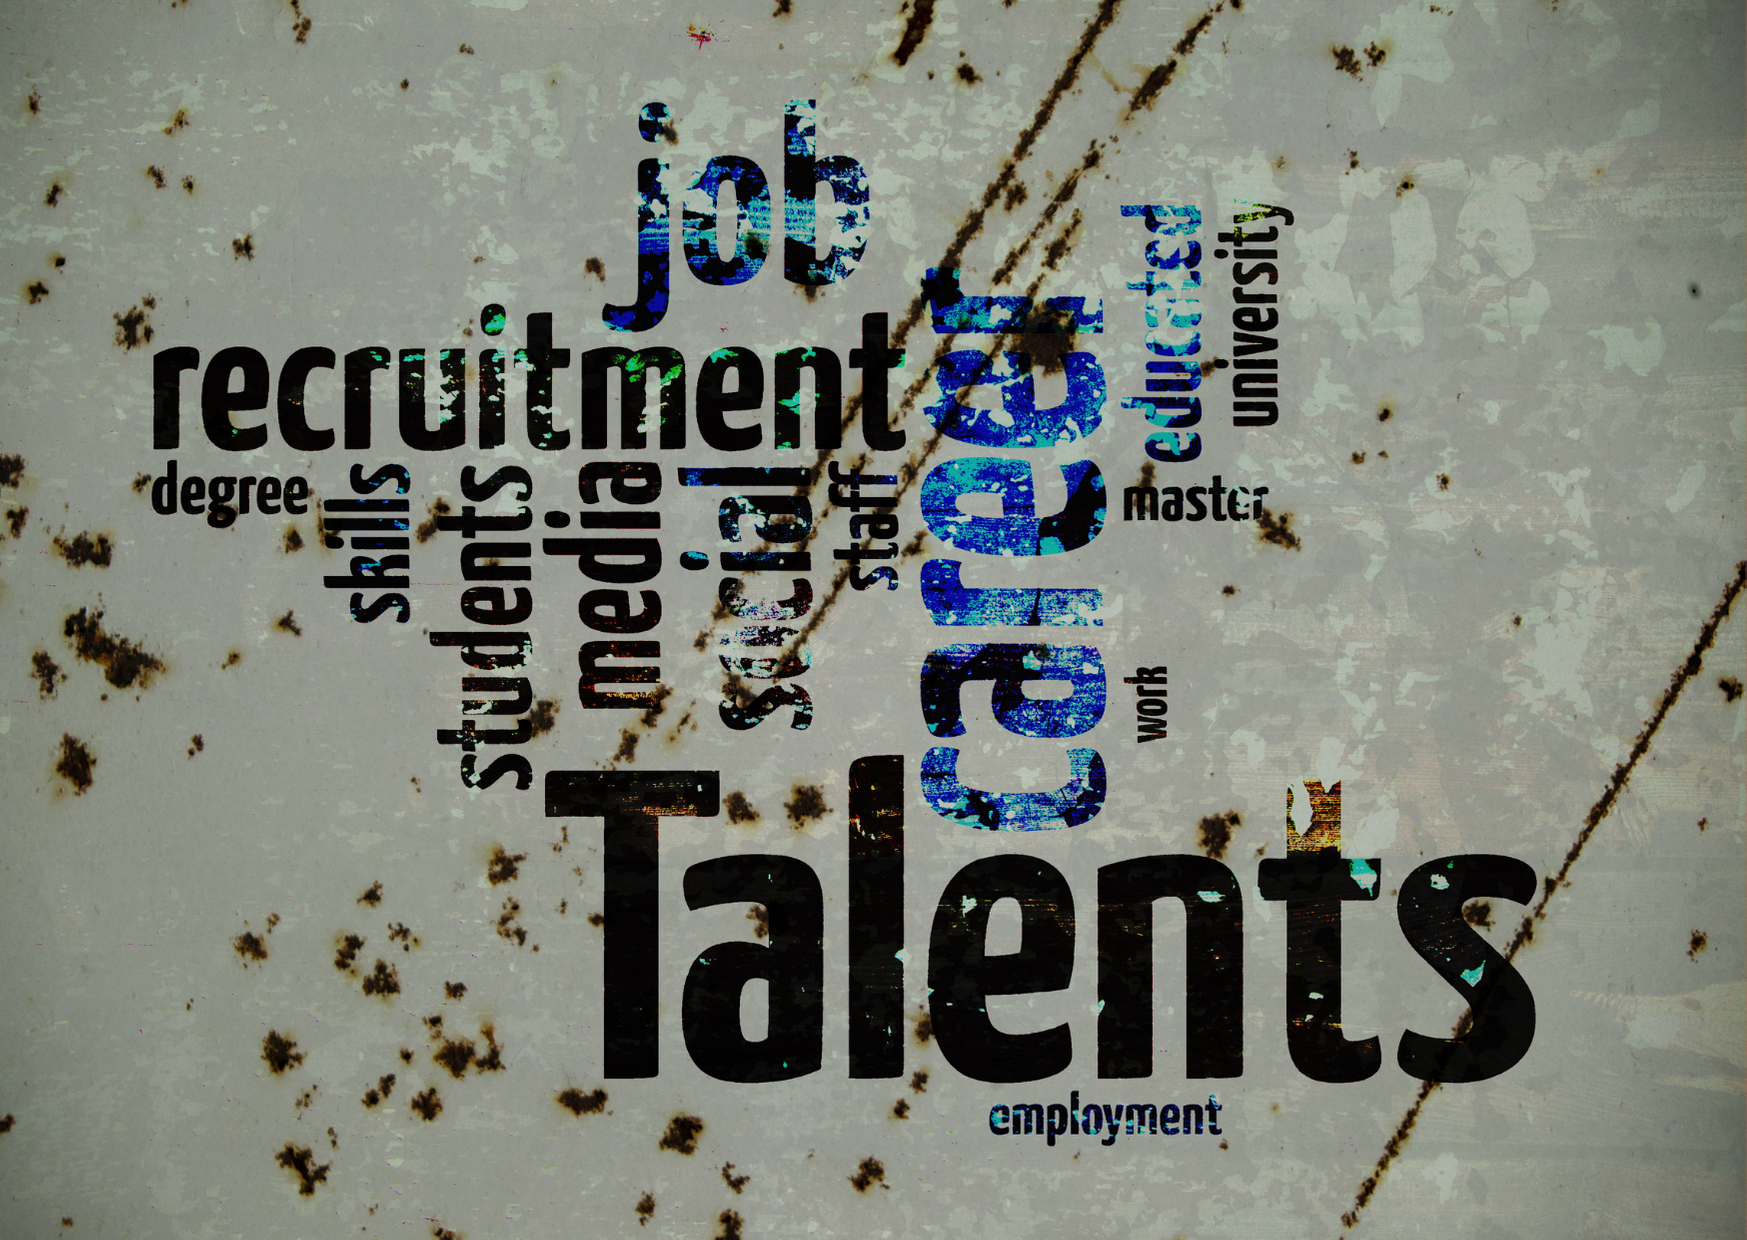 Benefits of Using a Recruitment Agency - For Candidates